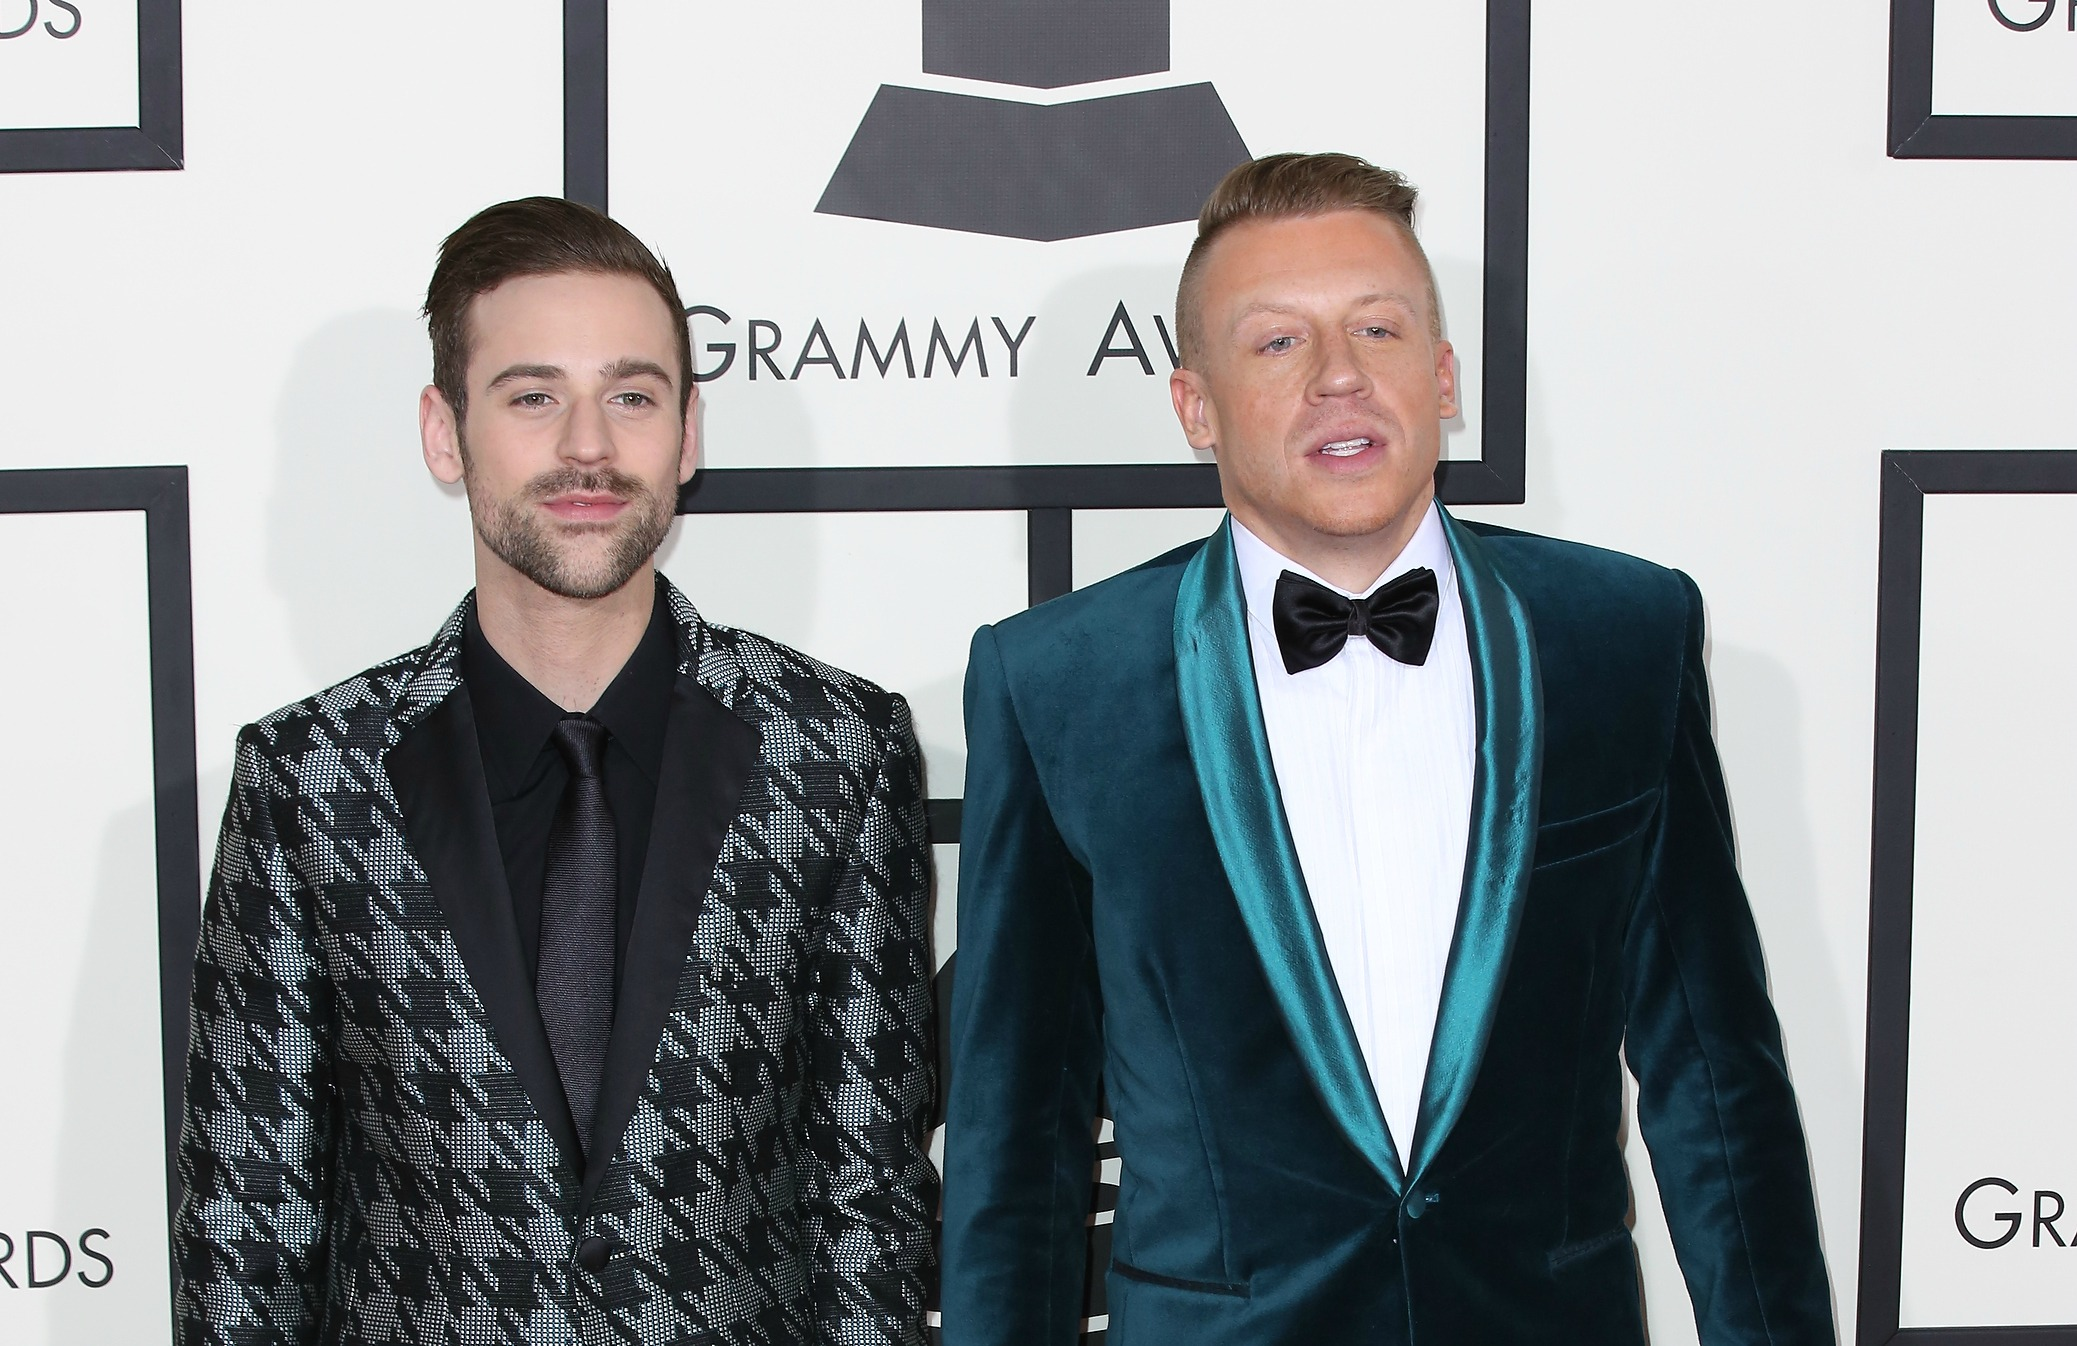 Ryan Lewis and Mackelmore launch 30/30 project